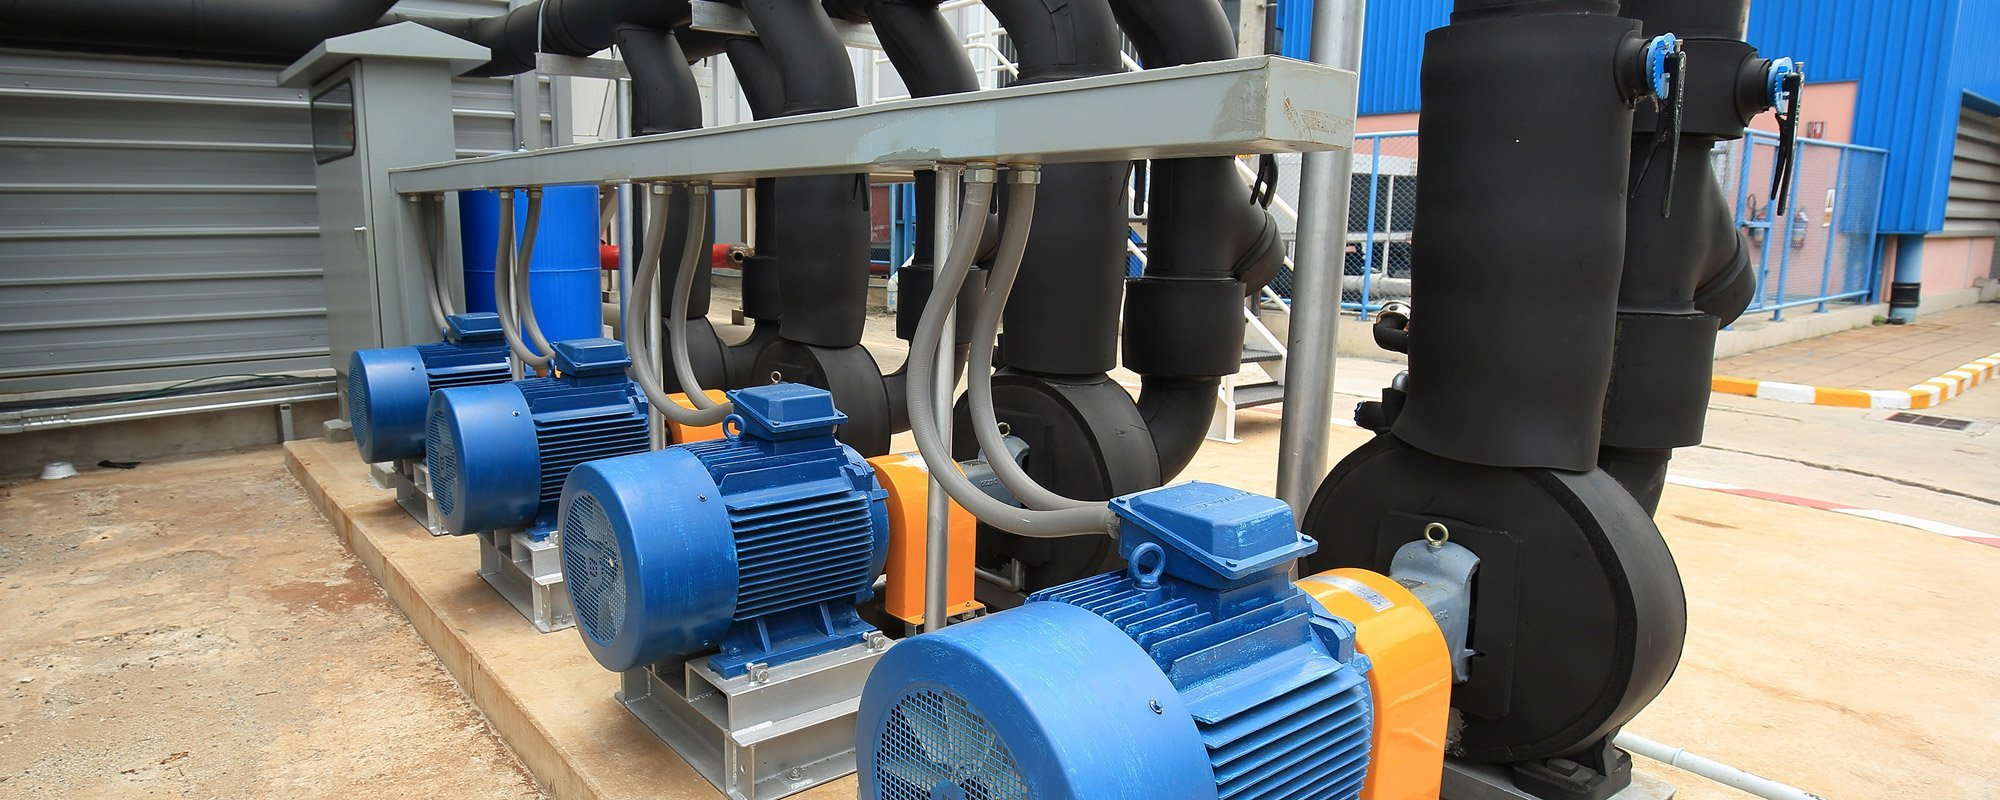 Installed pumps by experts